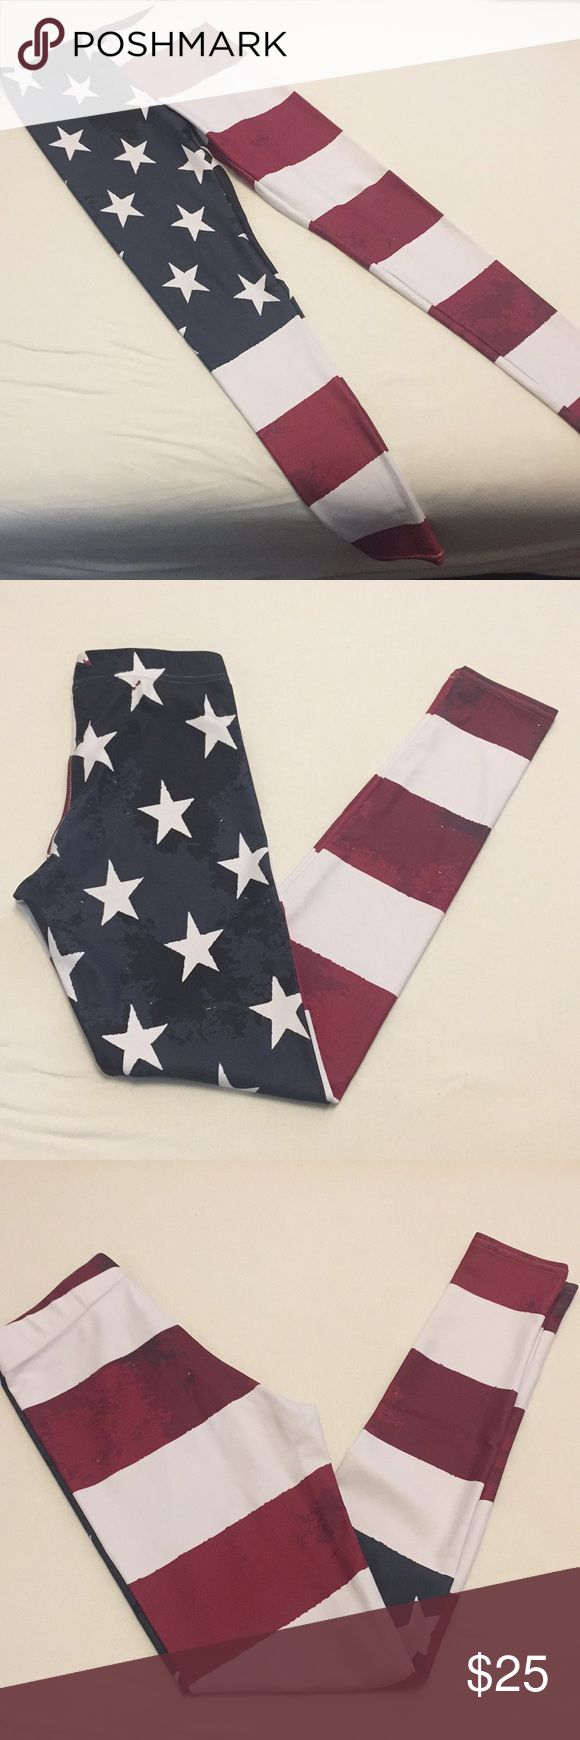 American Flag Leggings American Flag leggings, these are in good used condition, there is a tiny seam that looks like it may be coming undone. But there is no hole. I am not a seamstress... so I would never attempt to fix it. These still have tons of wear left in them! There is no tag for brand, but I believe these are GearBunch also. Priced to reflect the seam. All reasonable offers accepted, bundle to save and all orders come from smoke free home. Pants Leggings